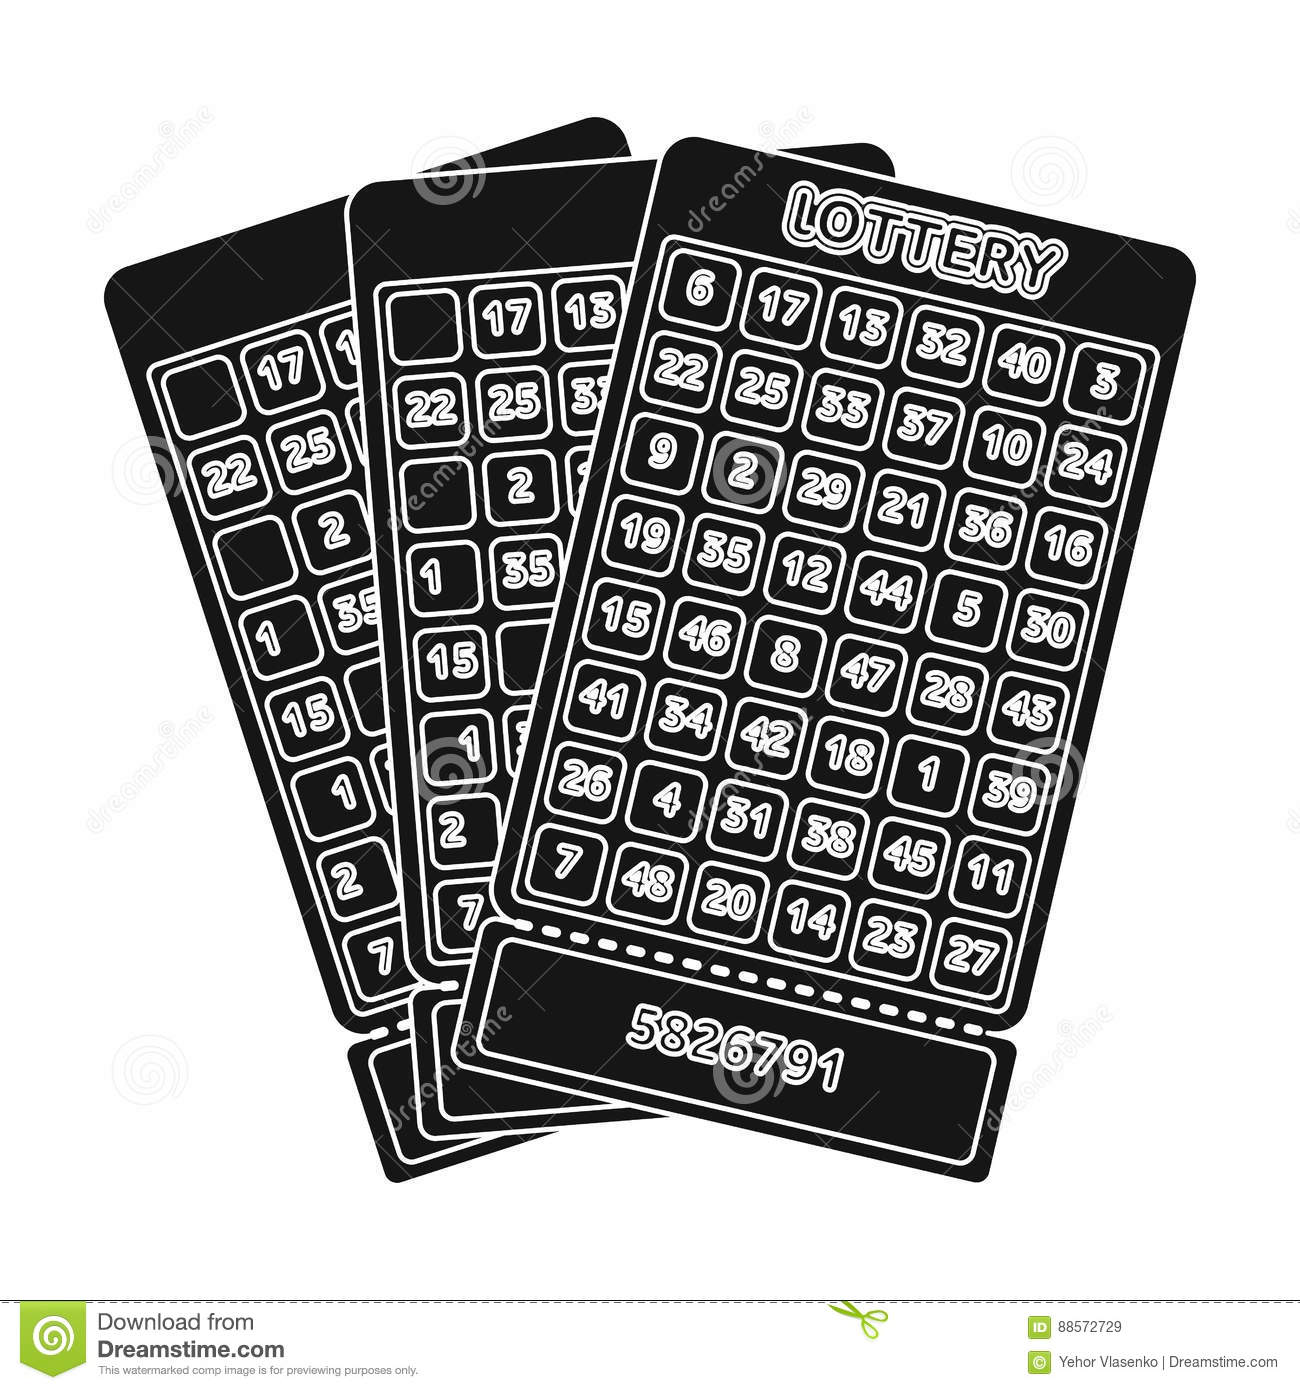 lottery black singles Learn how to select lottery numbers by using numerology.